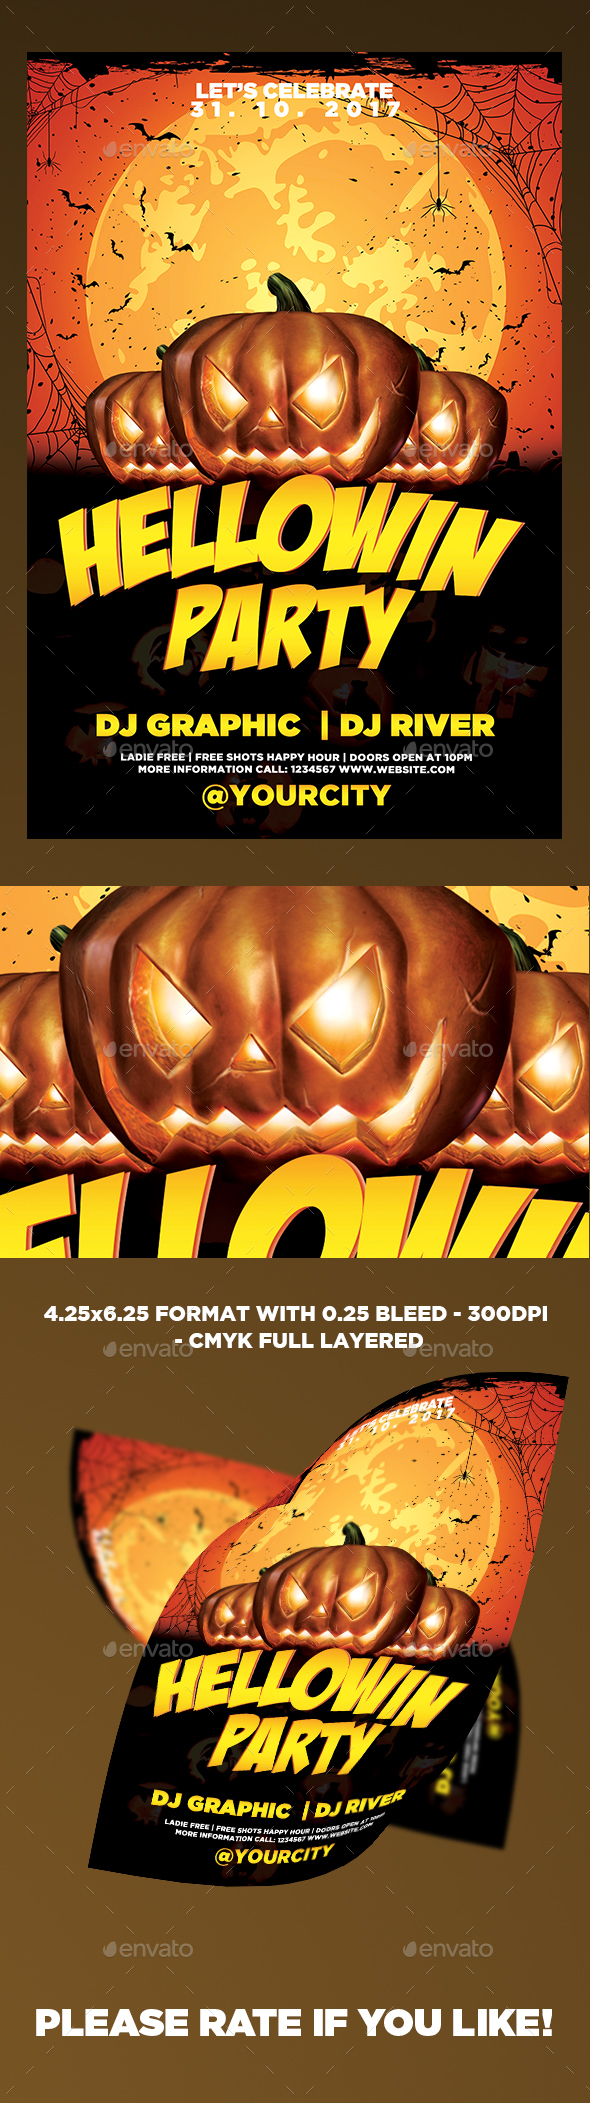 Hellowin Party Template - Events Flyers